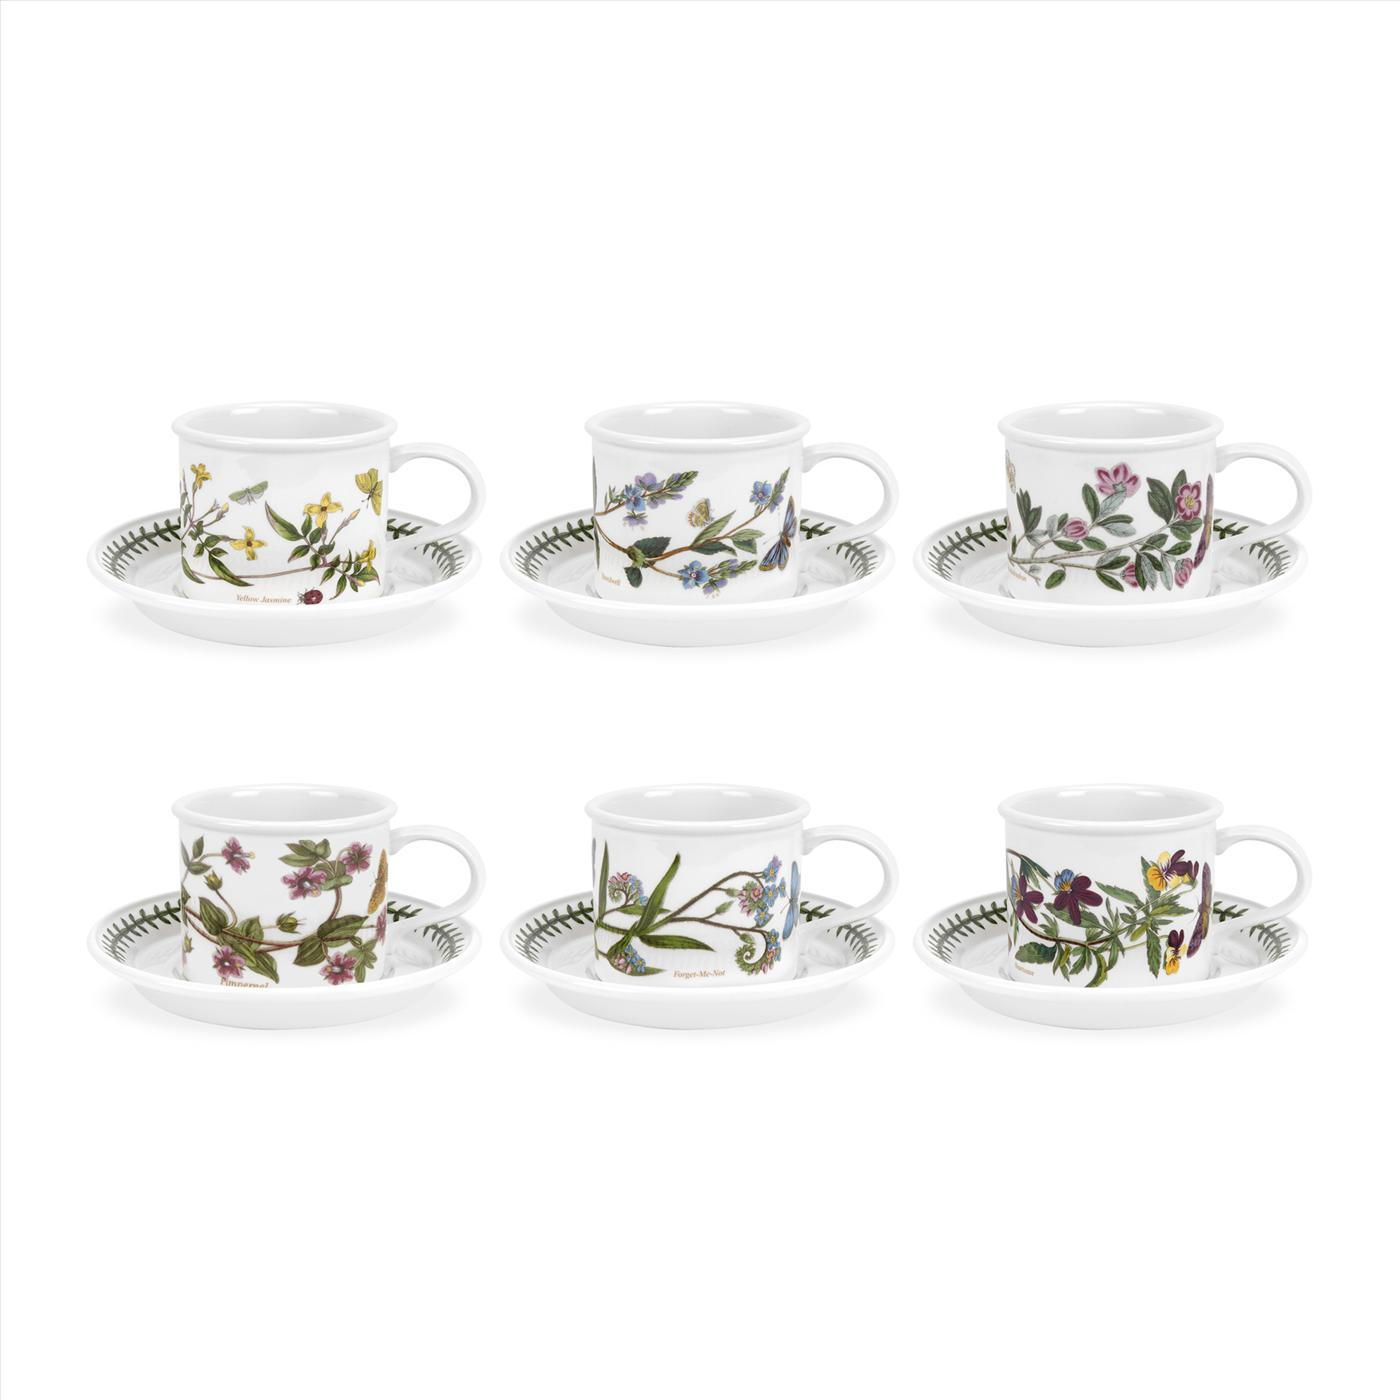 Botanic Garden Set of 6 Breakfast Cups & Saucers (D) Assorted Motifs image number 0